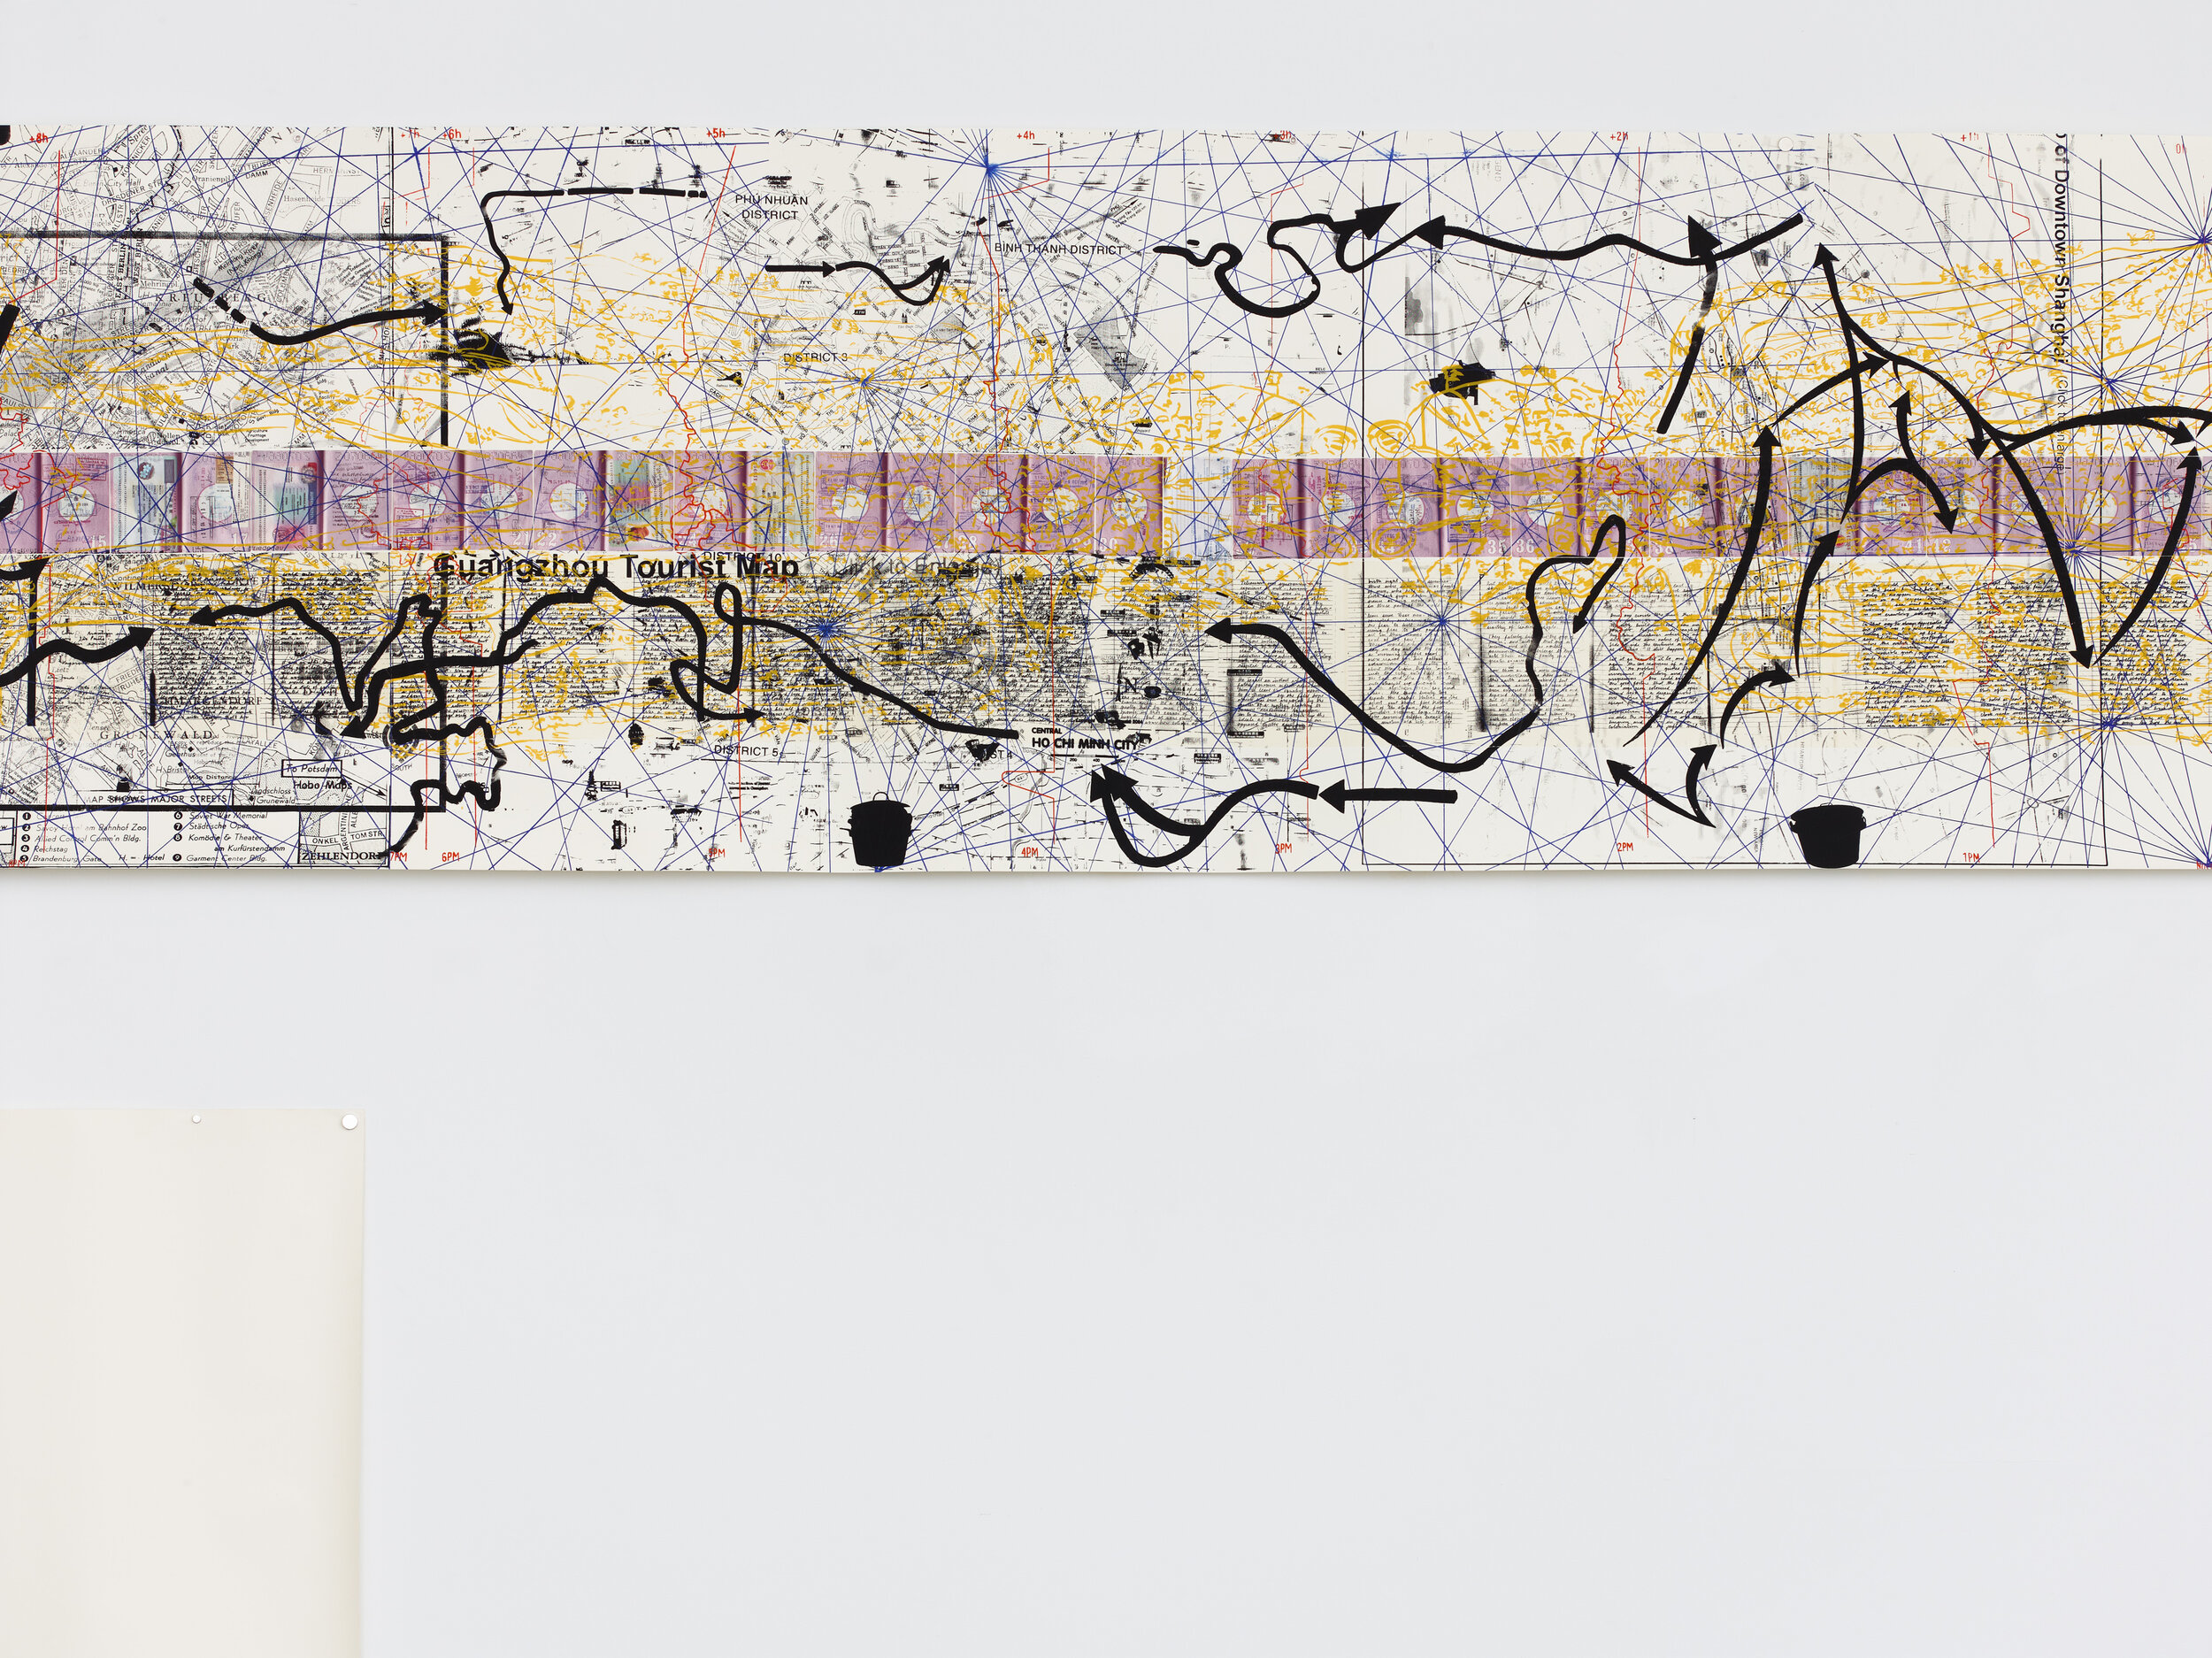 Detail of Rirkrit Tiravanija, Untitled 2008–2011 (the map of the land of feeling) I–III, 2008 - 11, Three scrolls with digital printing, lithography, chine collé, and screenprint, Approx. size each 36 x 334 inches Edition 5 of 40, 10